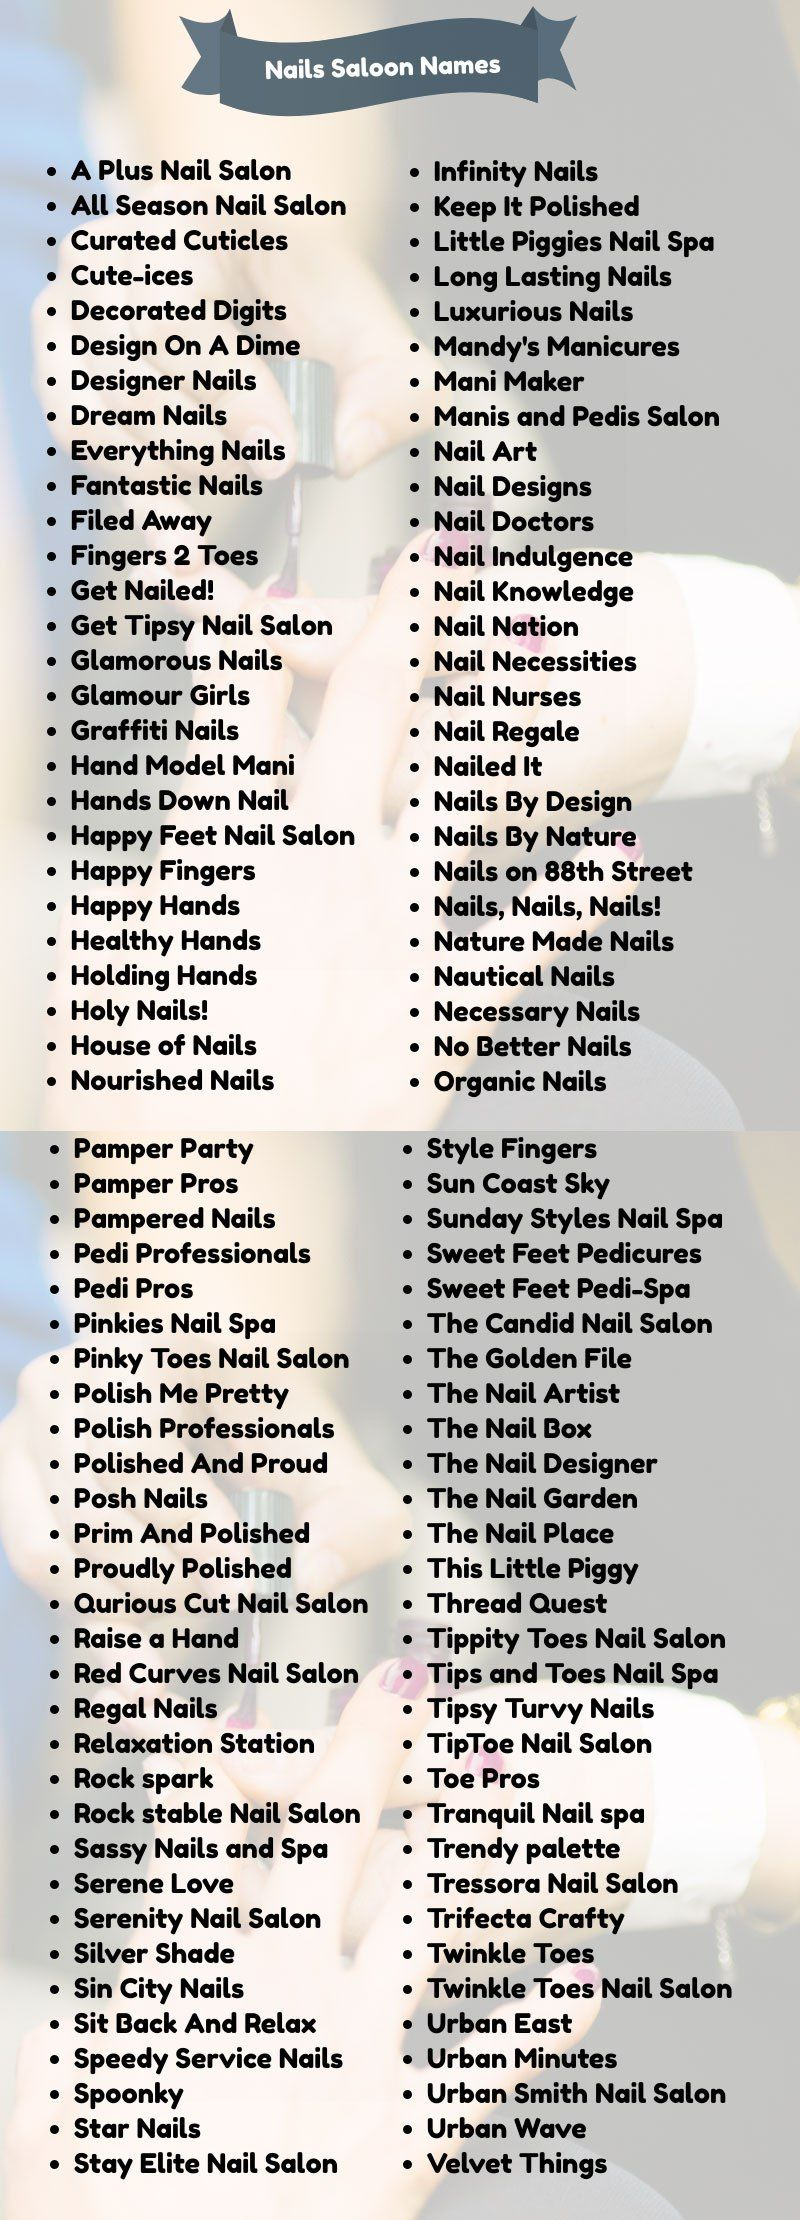 19+ Classy Nail Salon Names for Your Business in 19  Nail